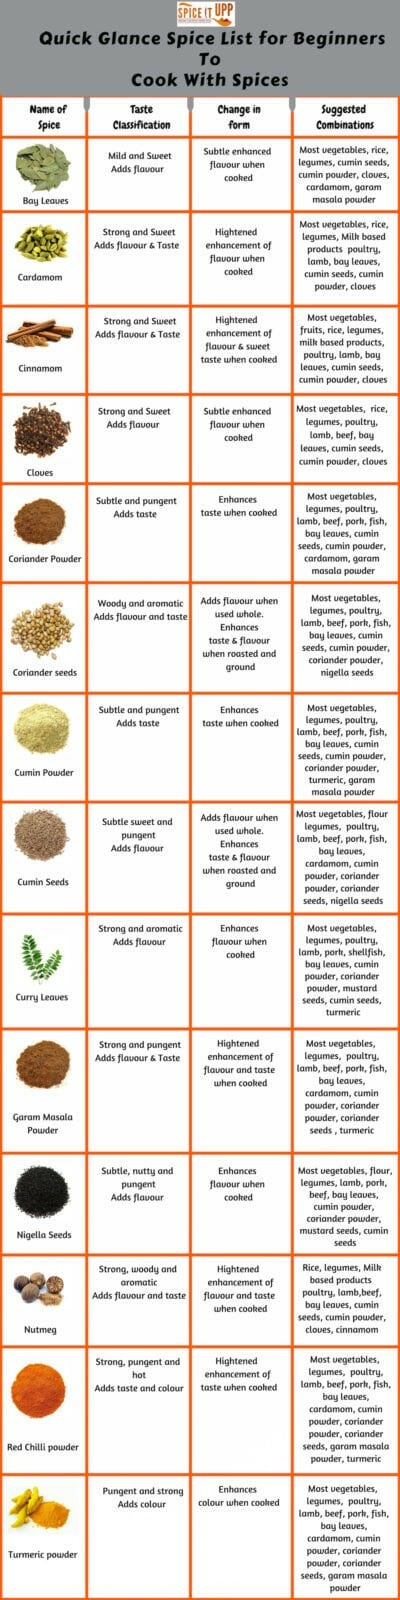 Spice infographic of List of spices for beginners for cooking with spices and their uses